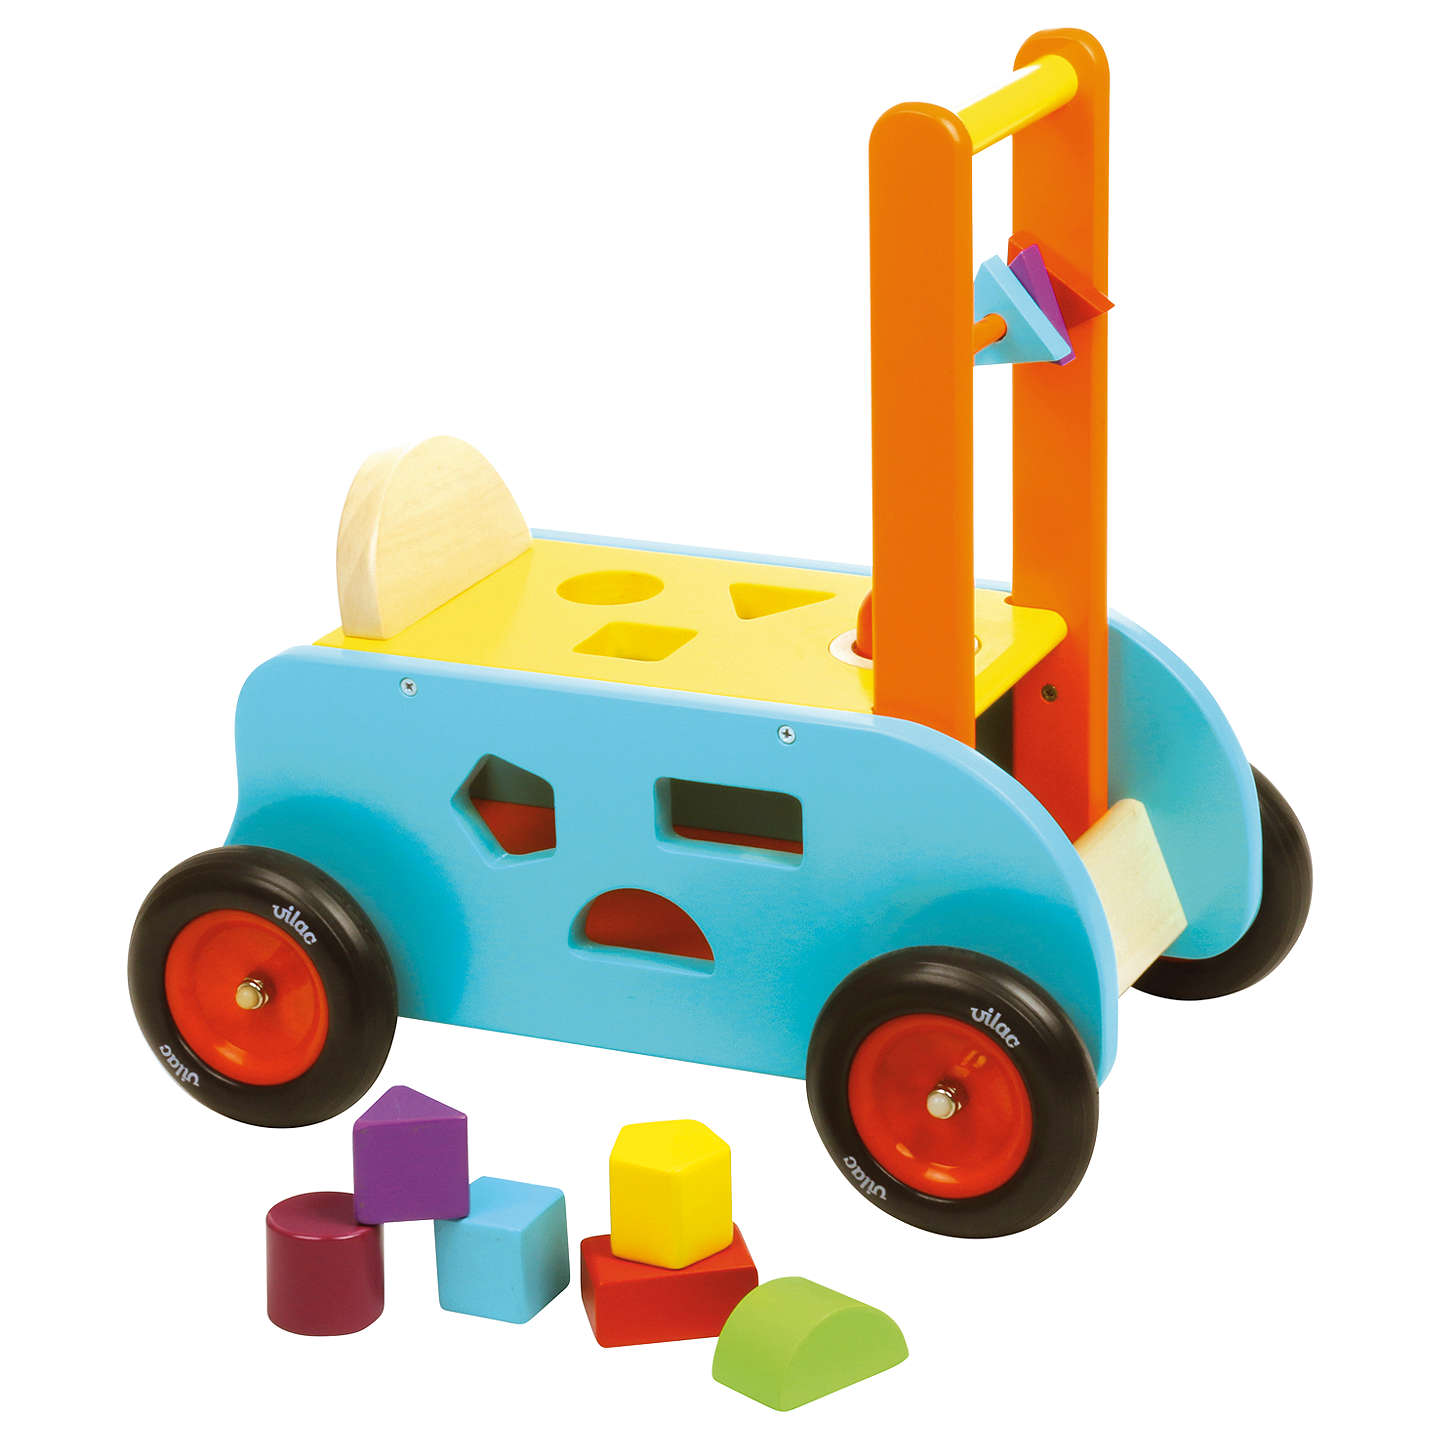 Vilac Wooden 3-in-1 Multi Activity Ride On Cart and Walker at John Lewis